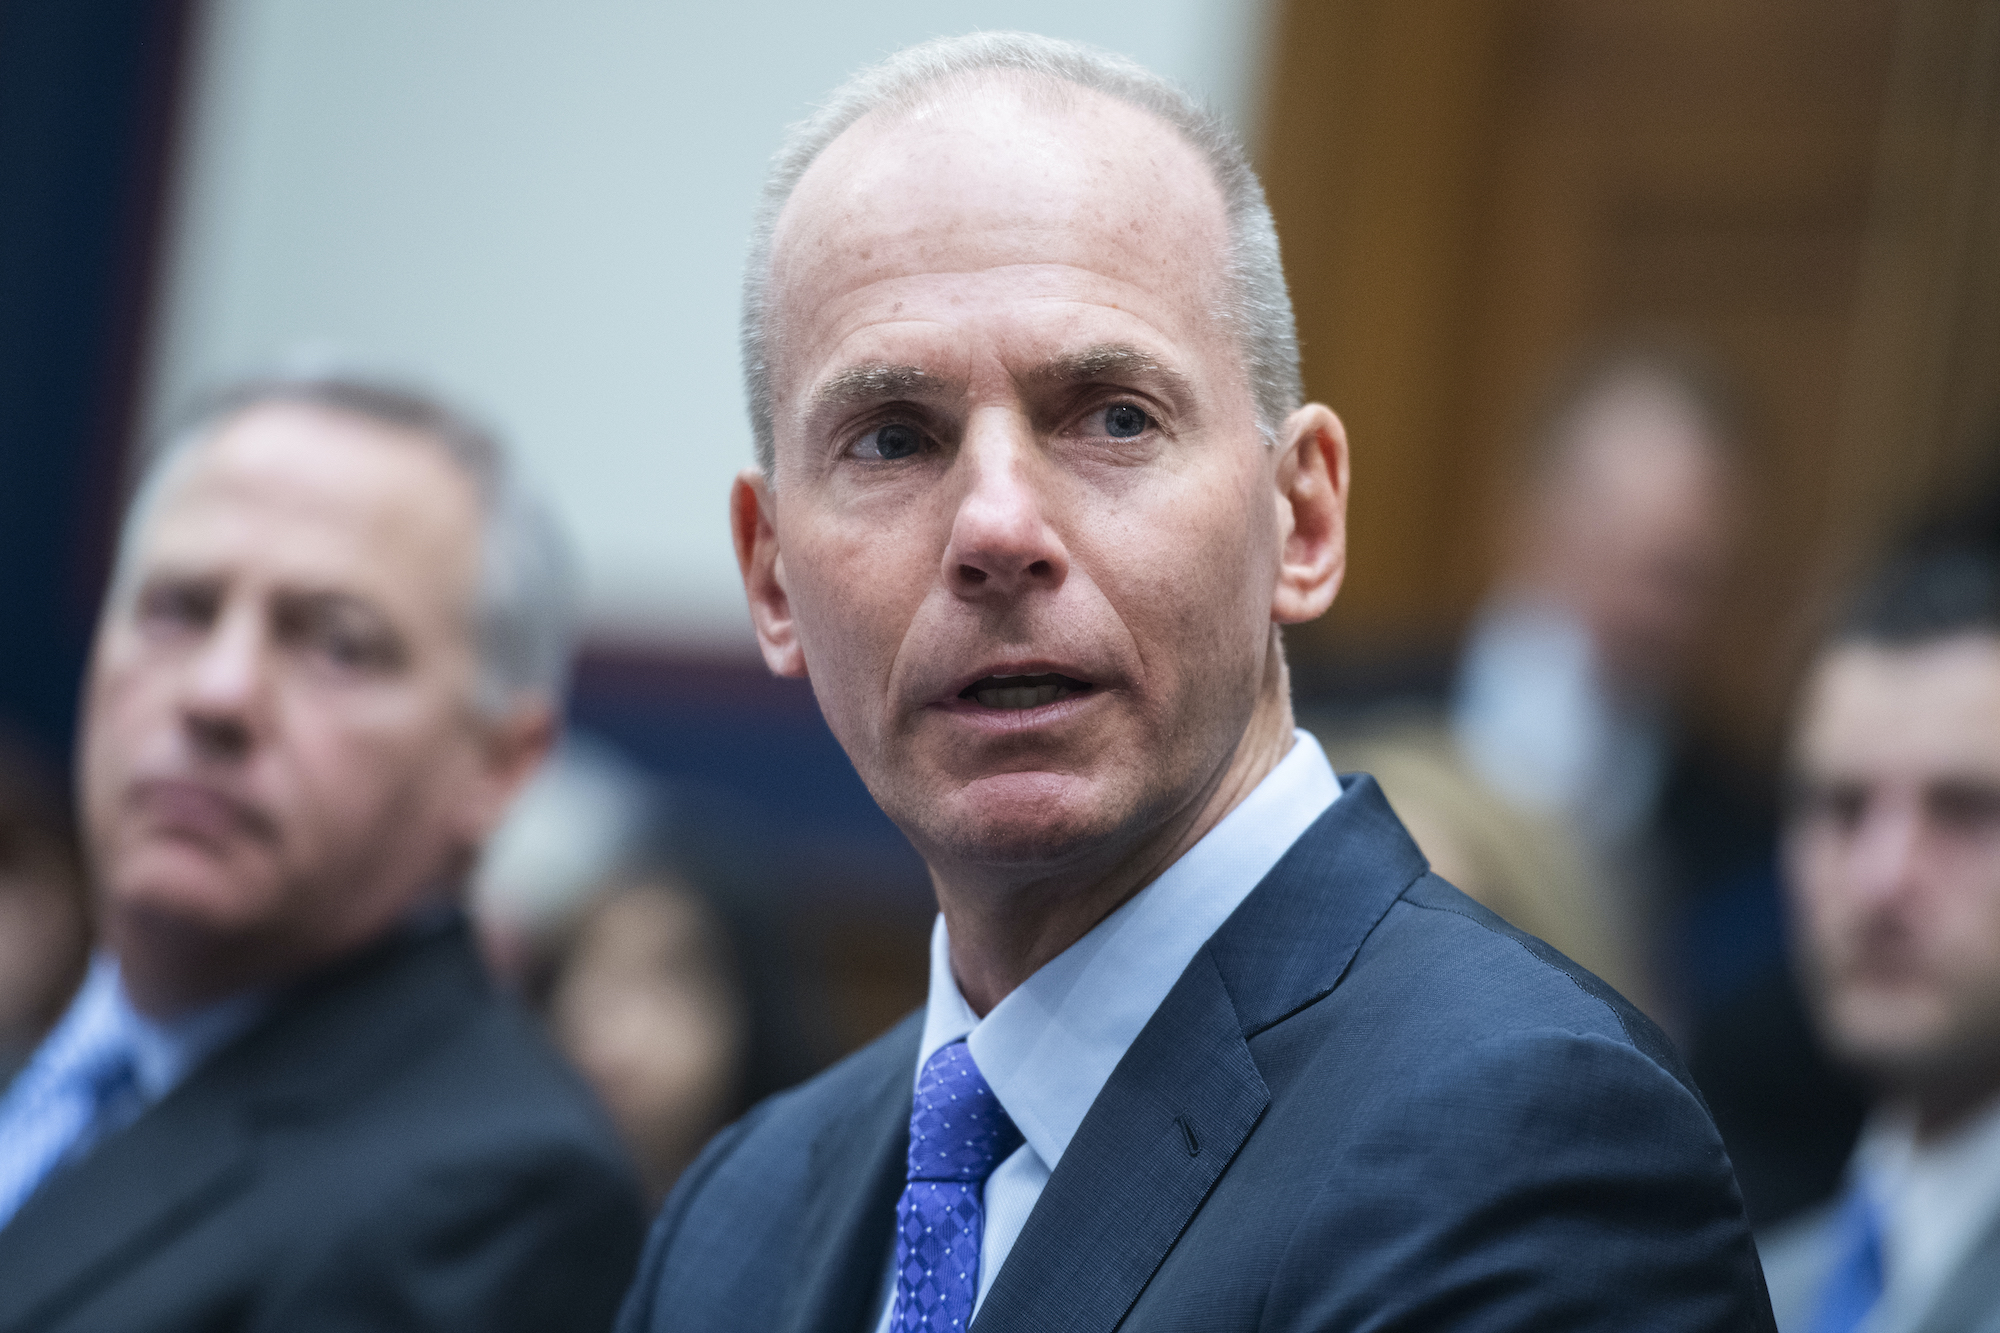 Boeing CEO Dennis Muilenburg to step down immediately